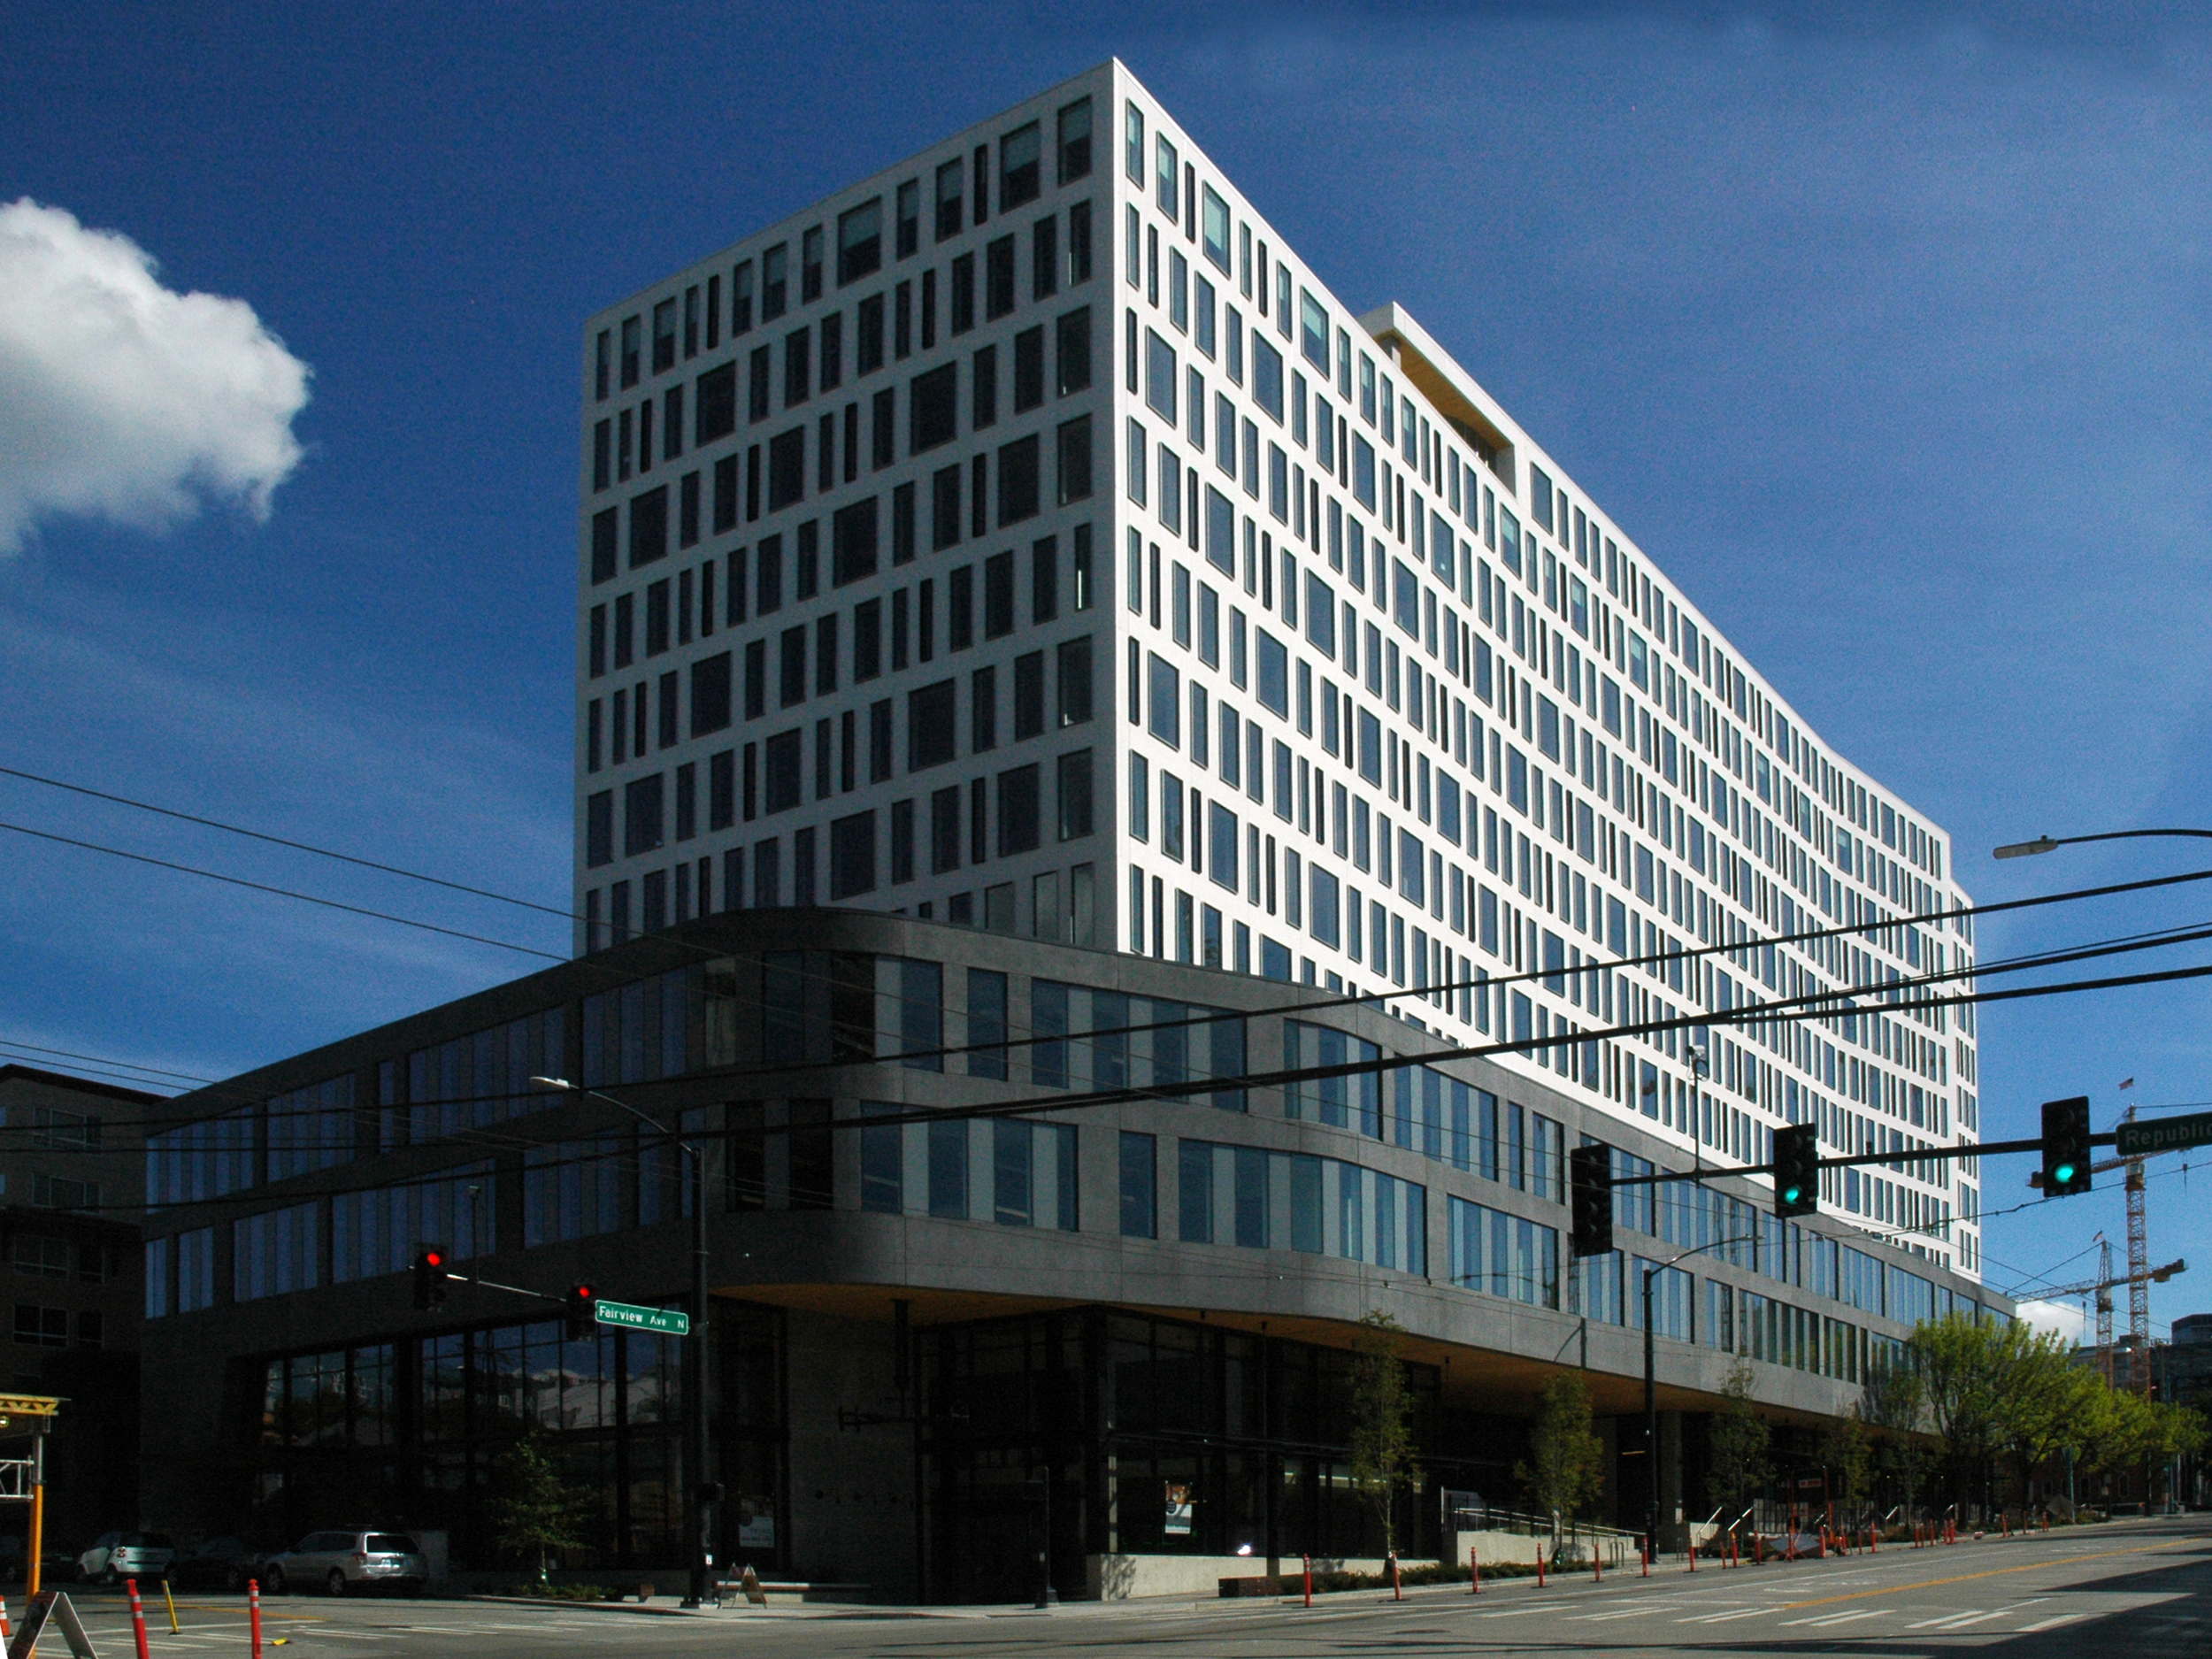 This high-rise tower consists of approximately 340k sf of office in the South Lake Union neighborhood with a ground floor market hall that connects the ground level to the surrounding neighborhood.Light wells are carved out of the lower five floors bringing light into the ground floor retail common areas. Large hydraulic doors bring the outside in at grade and a mid-block connecting stair provides additional flow through the building.